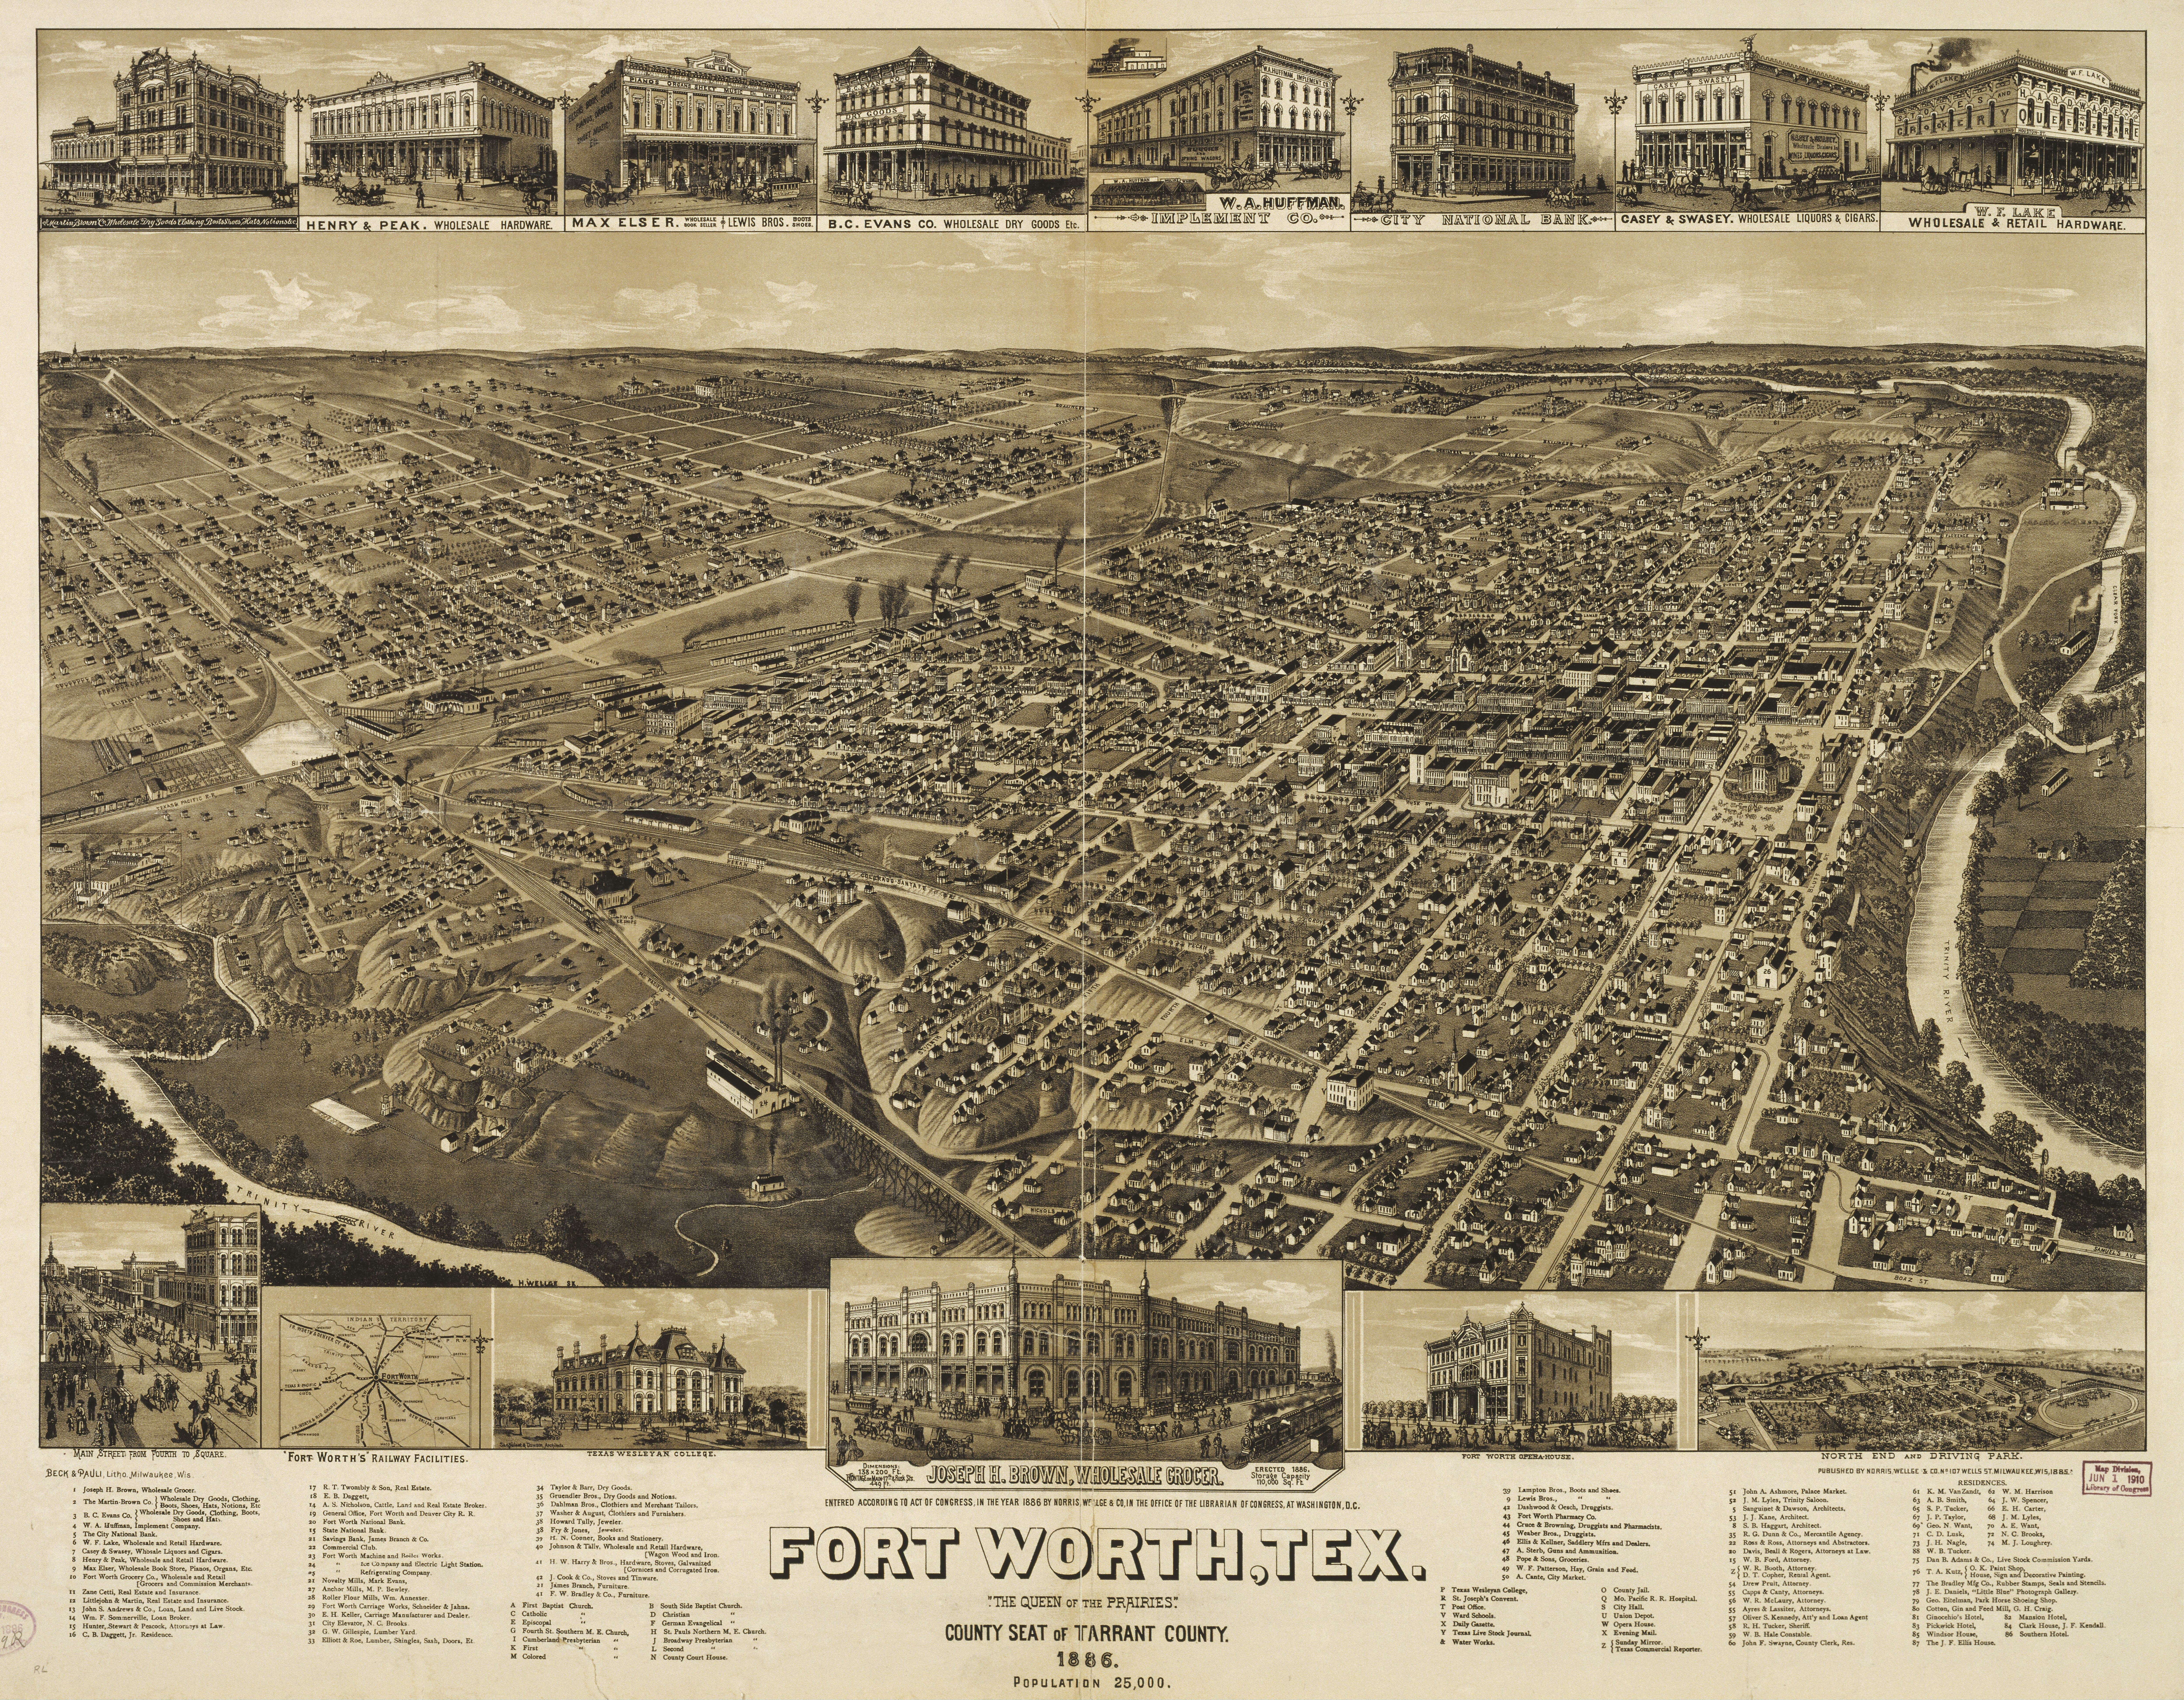 File:Old map-Fort Worth-1886.jpg - Wikimedia Commons